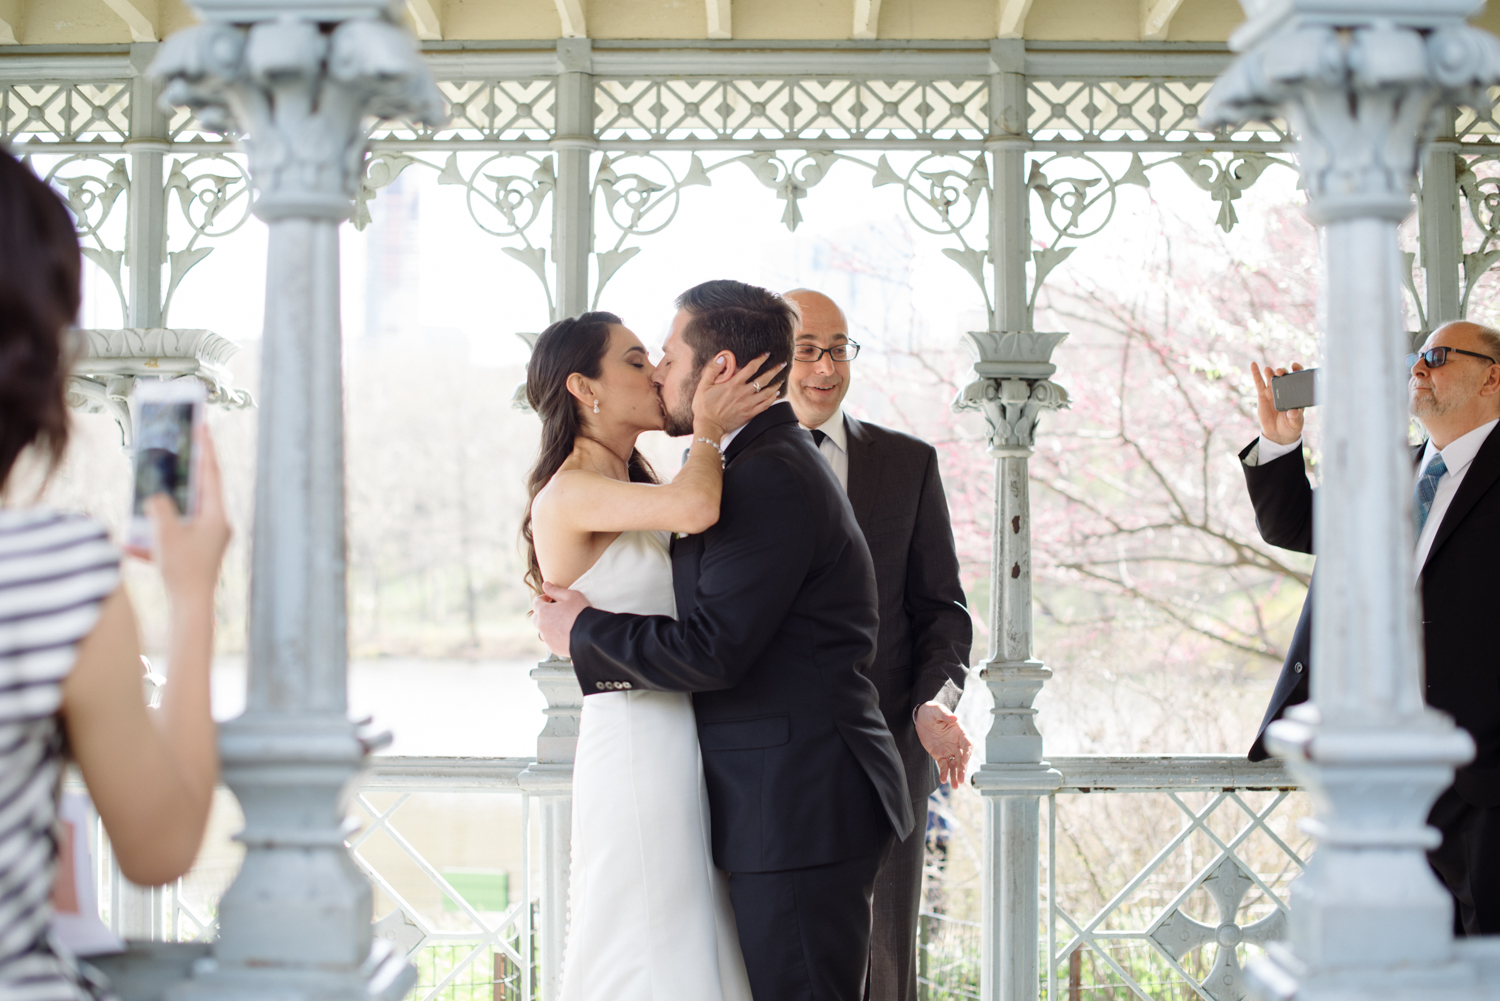 Anahi+David- Central Park Elopement- New York City- Olivia Christina Photo (157).JPG